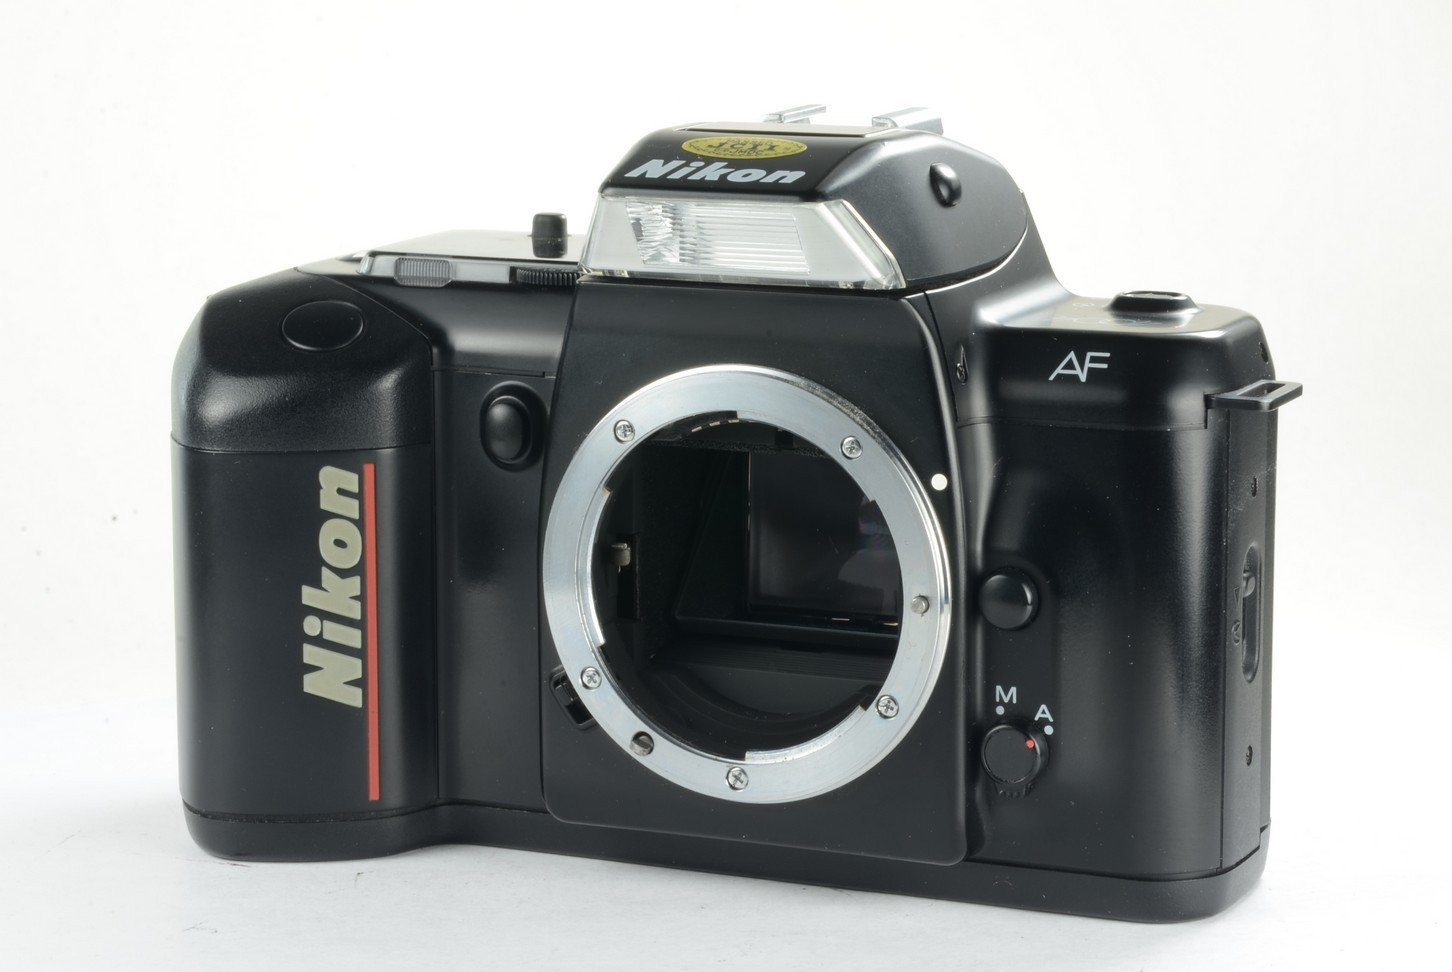 Nikon N4004 F-401 auto focus SLR film camera